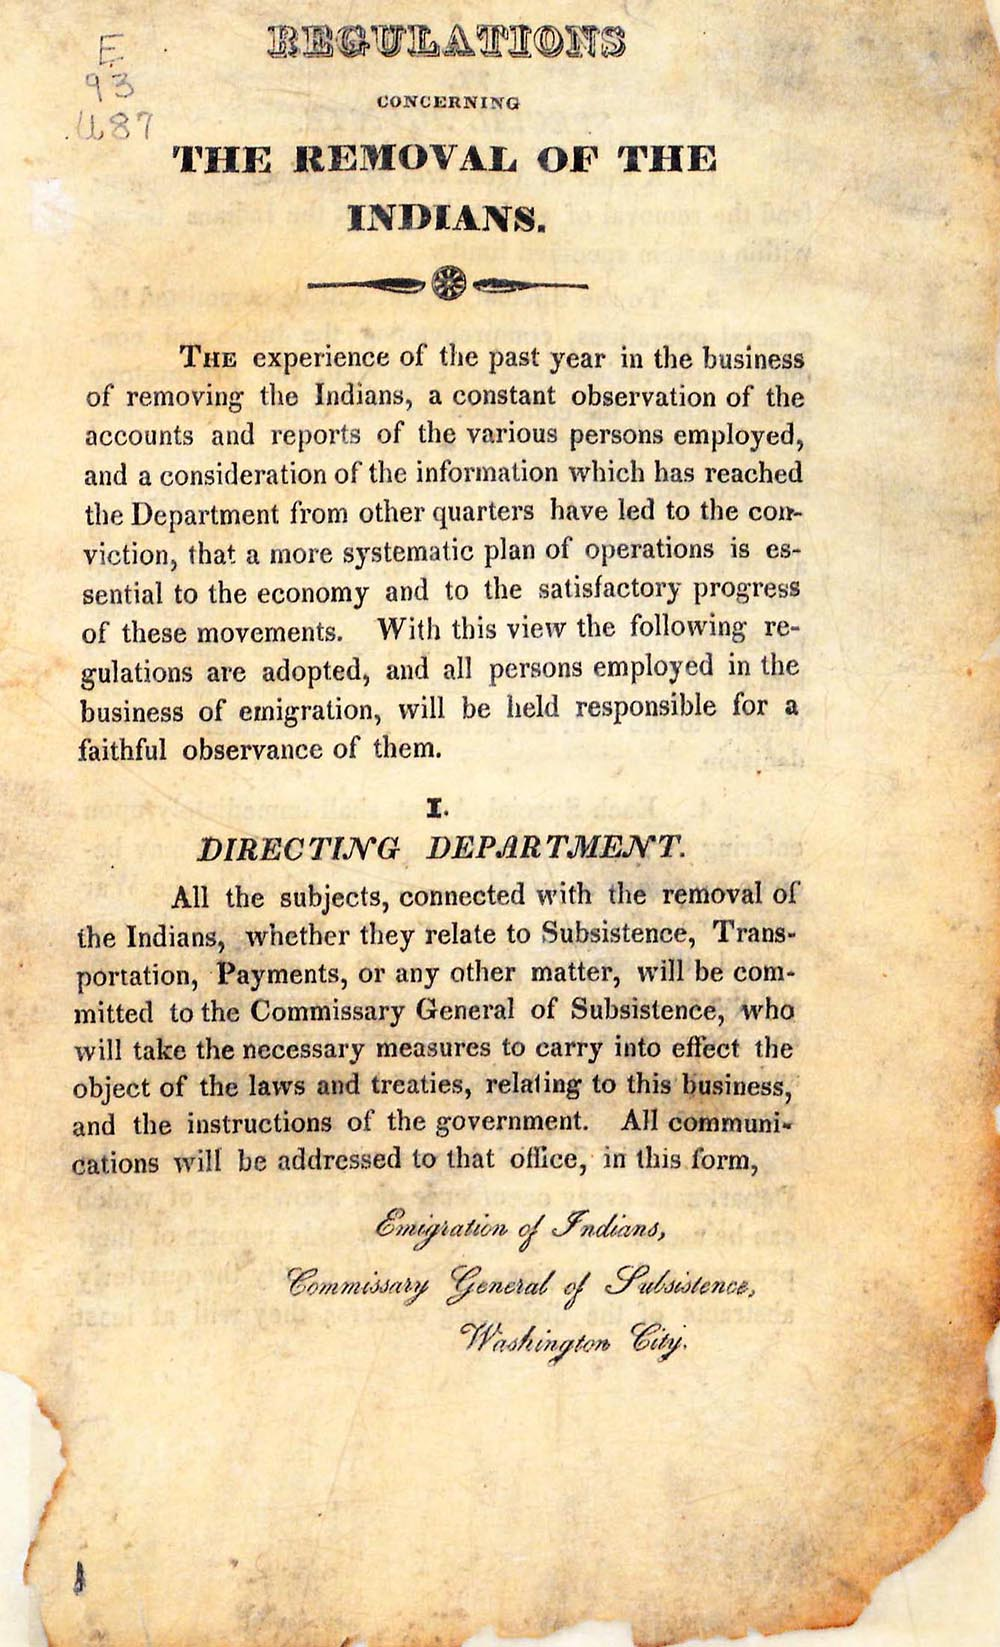 Regulations concerning the removal of the Indians, published by the United States War Department